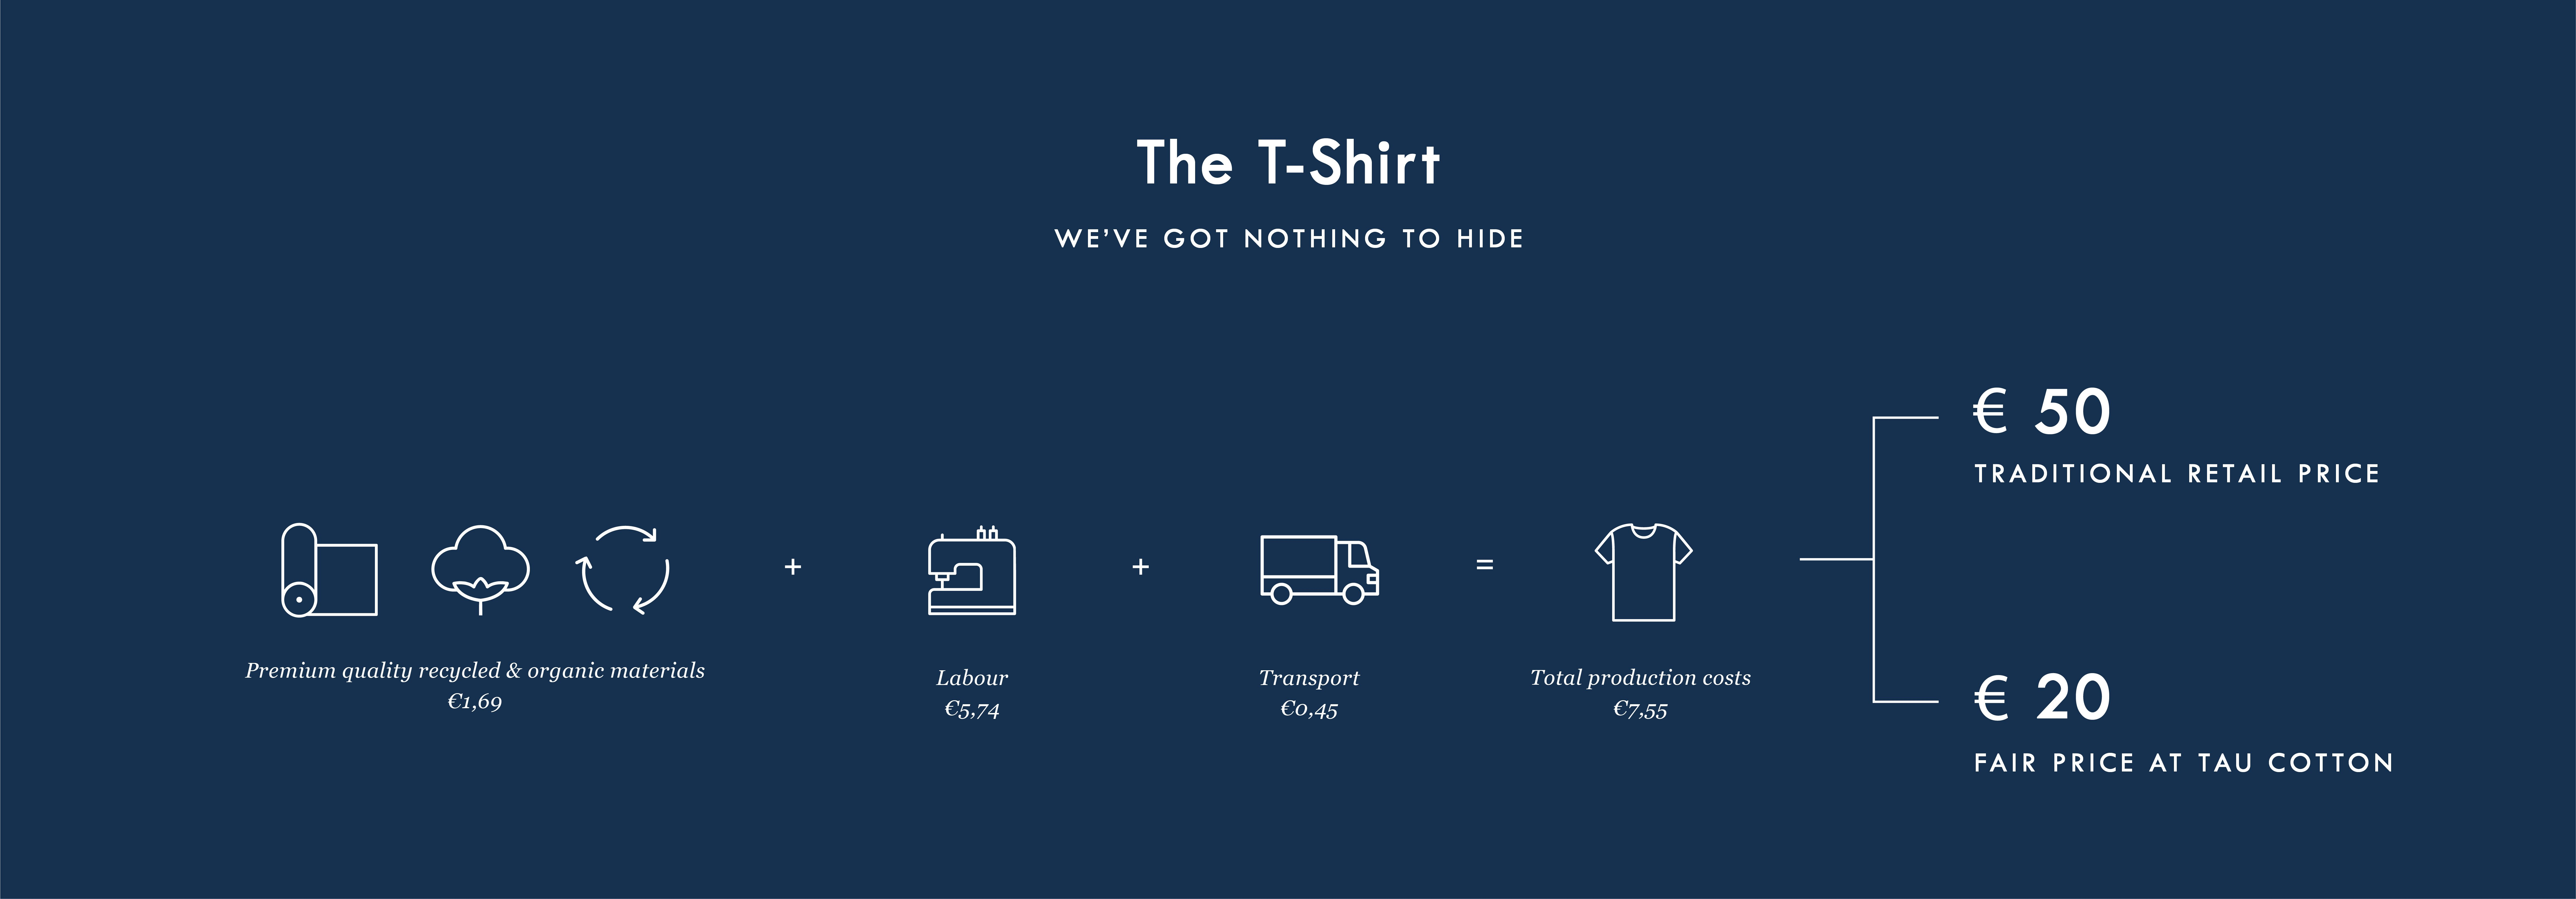 Crew Neck Pocket T-shirt - how product is made